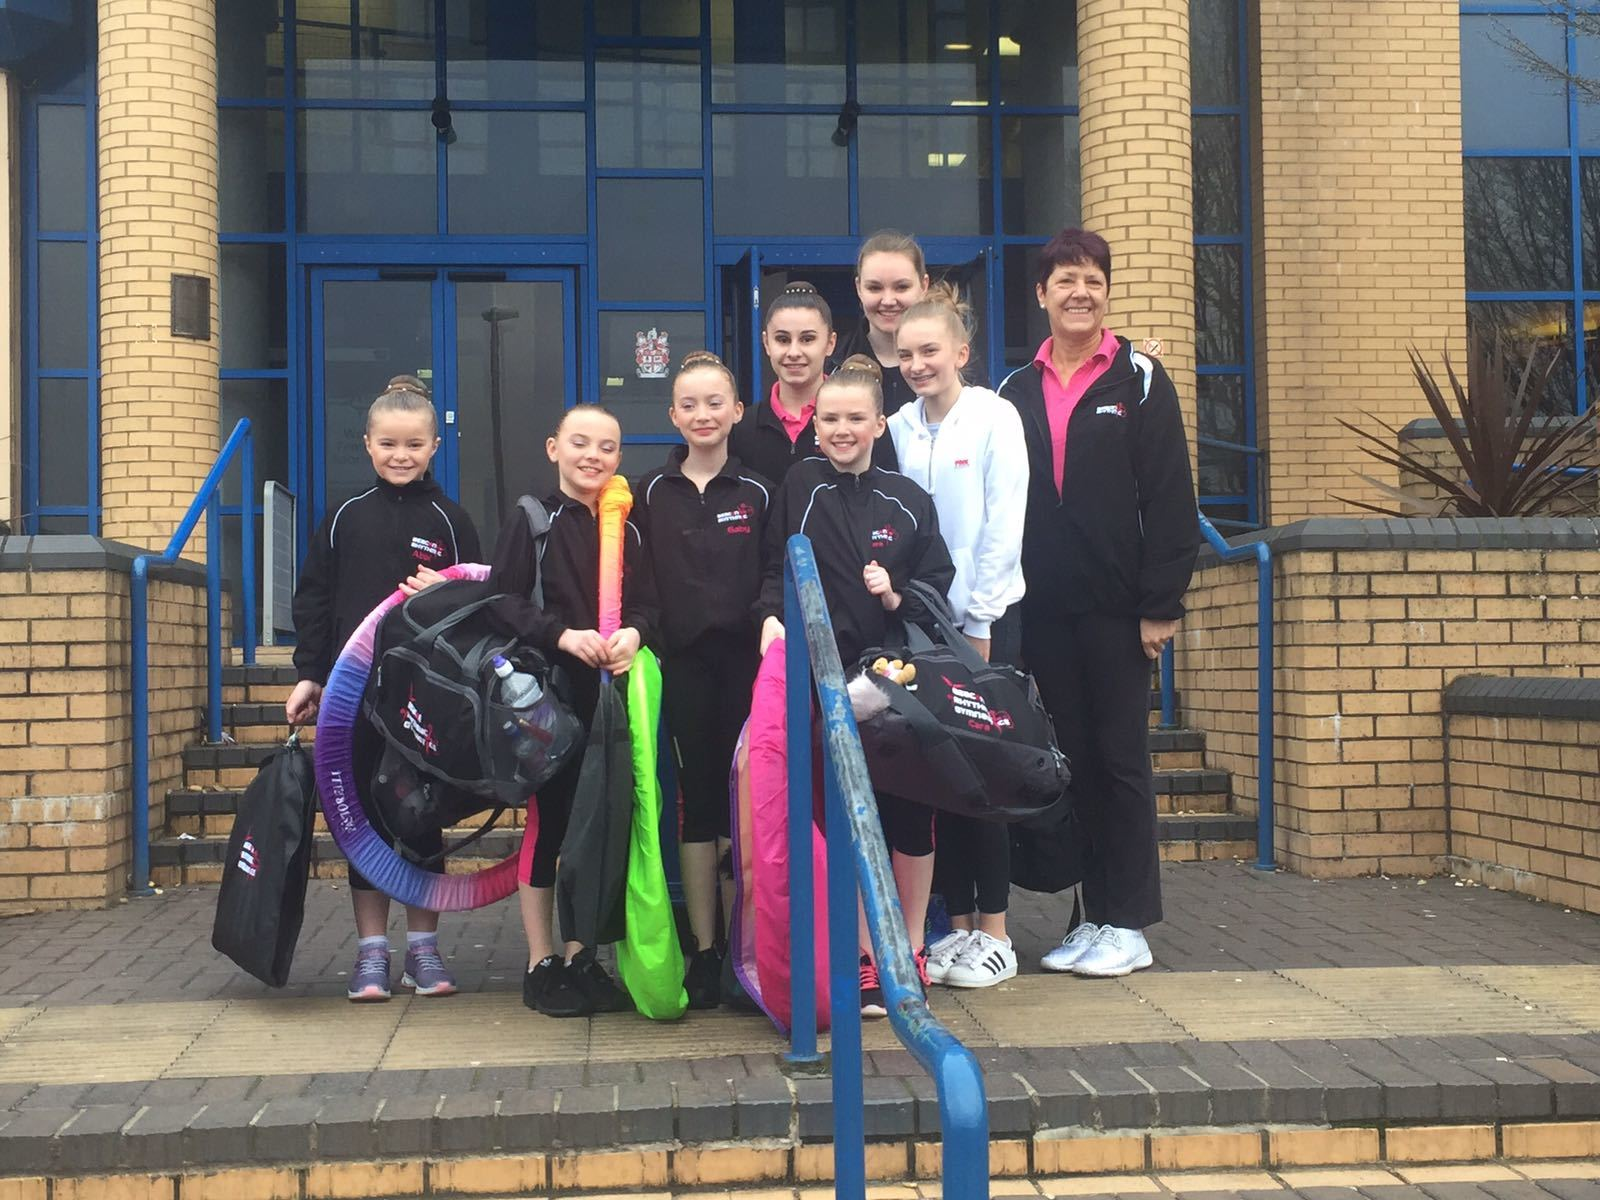 Sue with some of the girls she's coached.